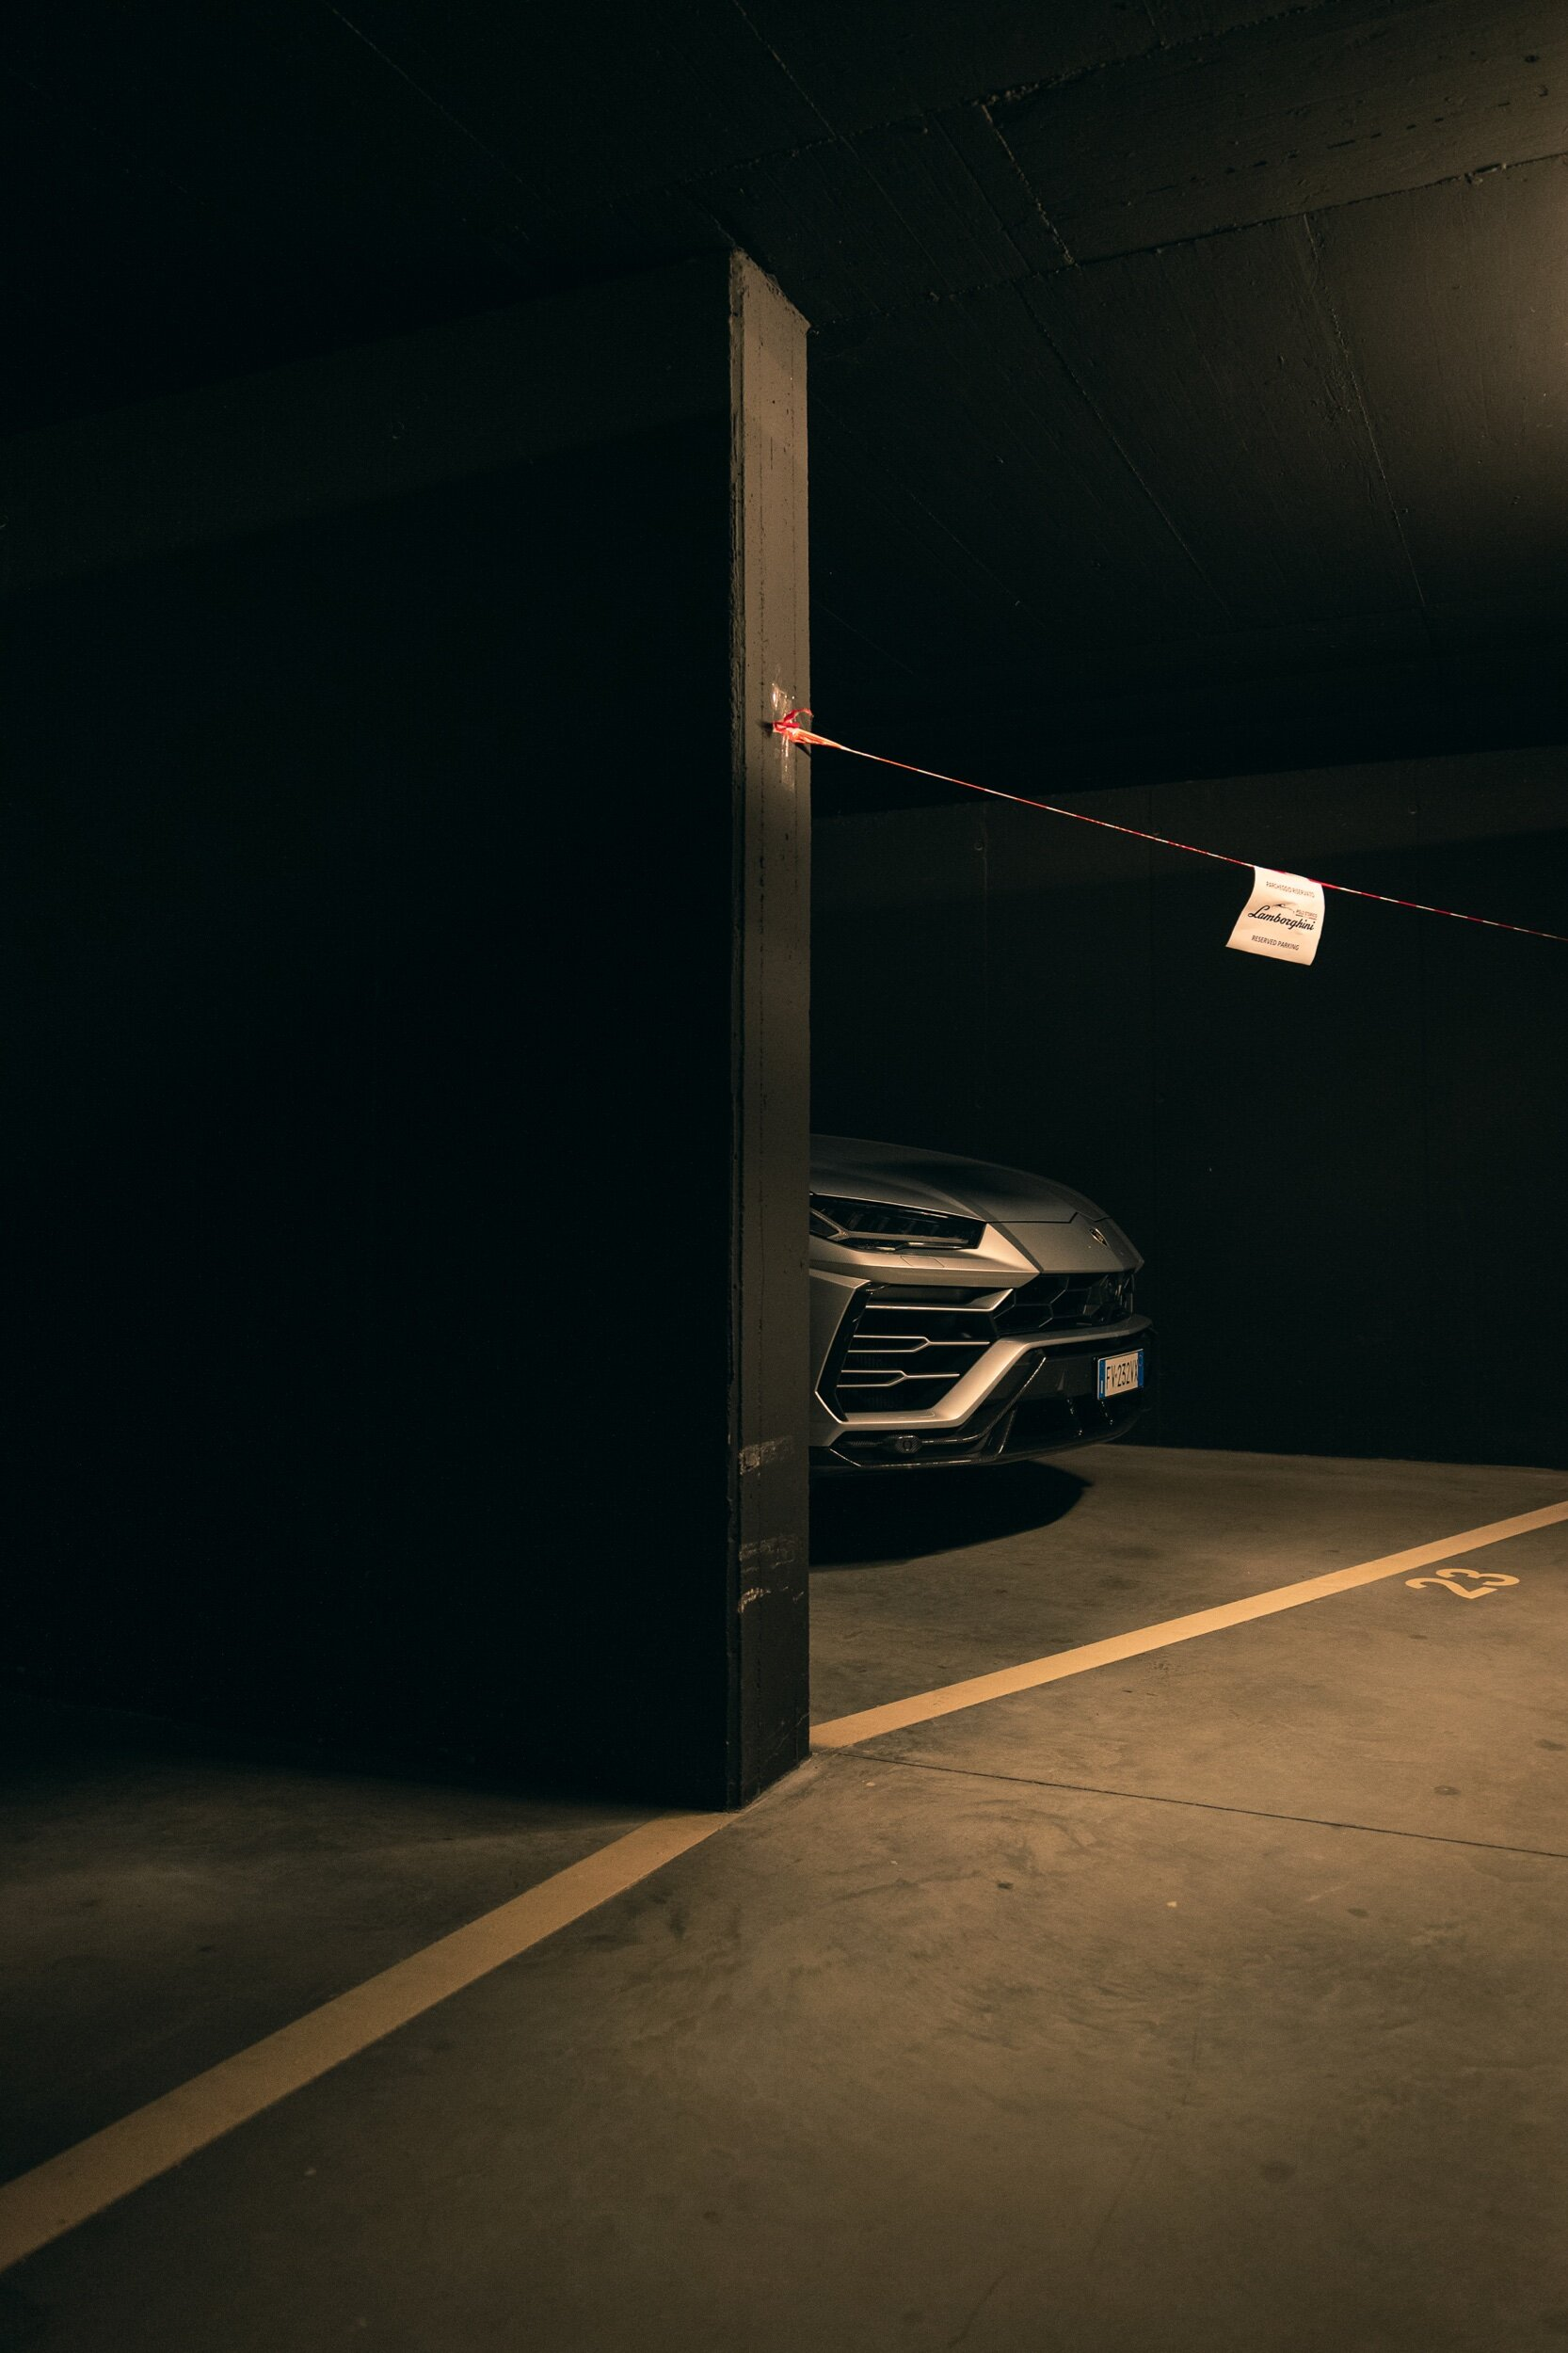 The Bull resting after a hard day of work, Lamborghini Urus..